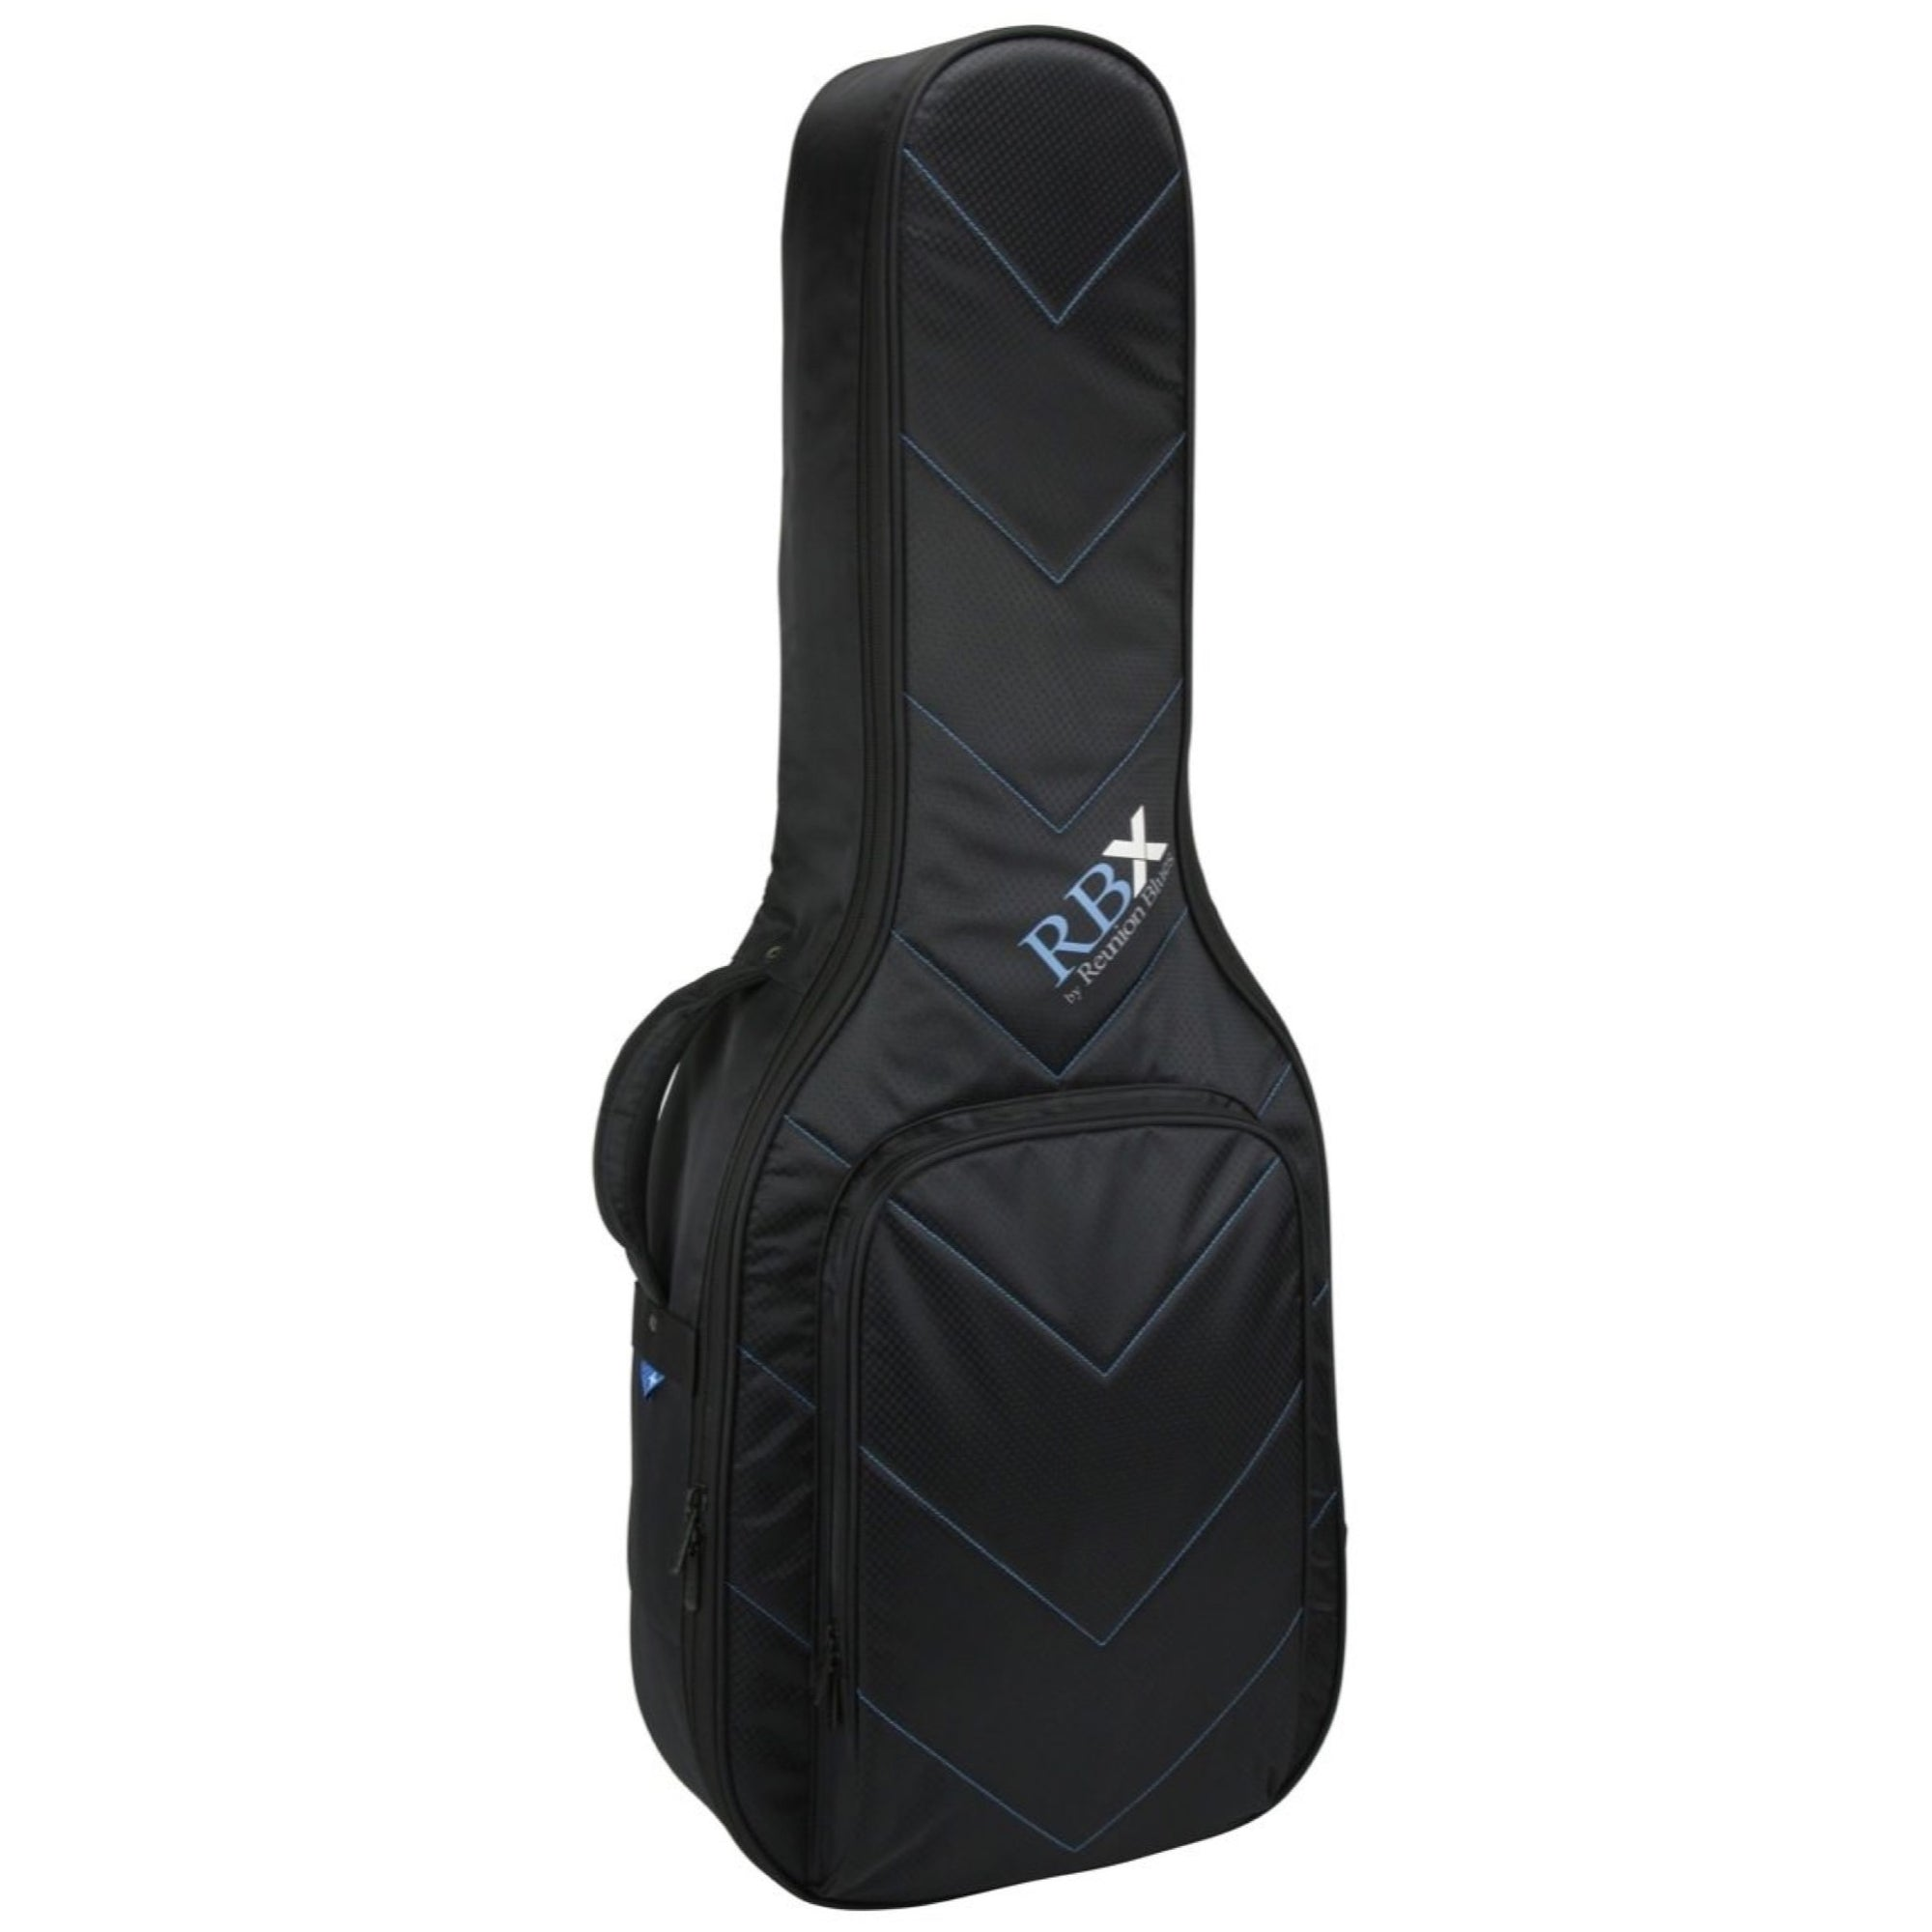 Reunion Blues RBXC3 Small Body Acoustic Guitar Bag